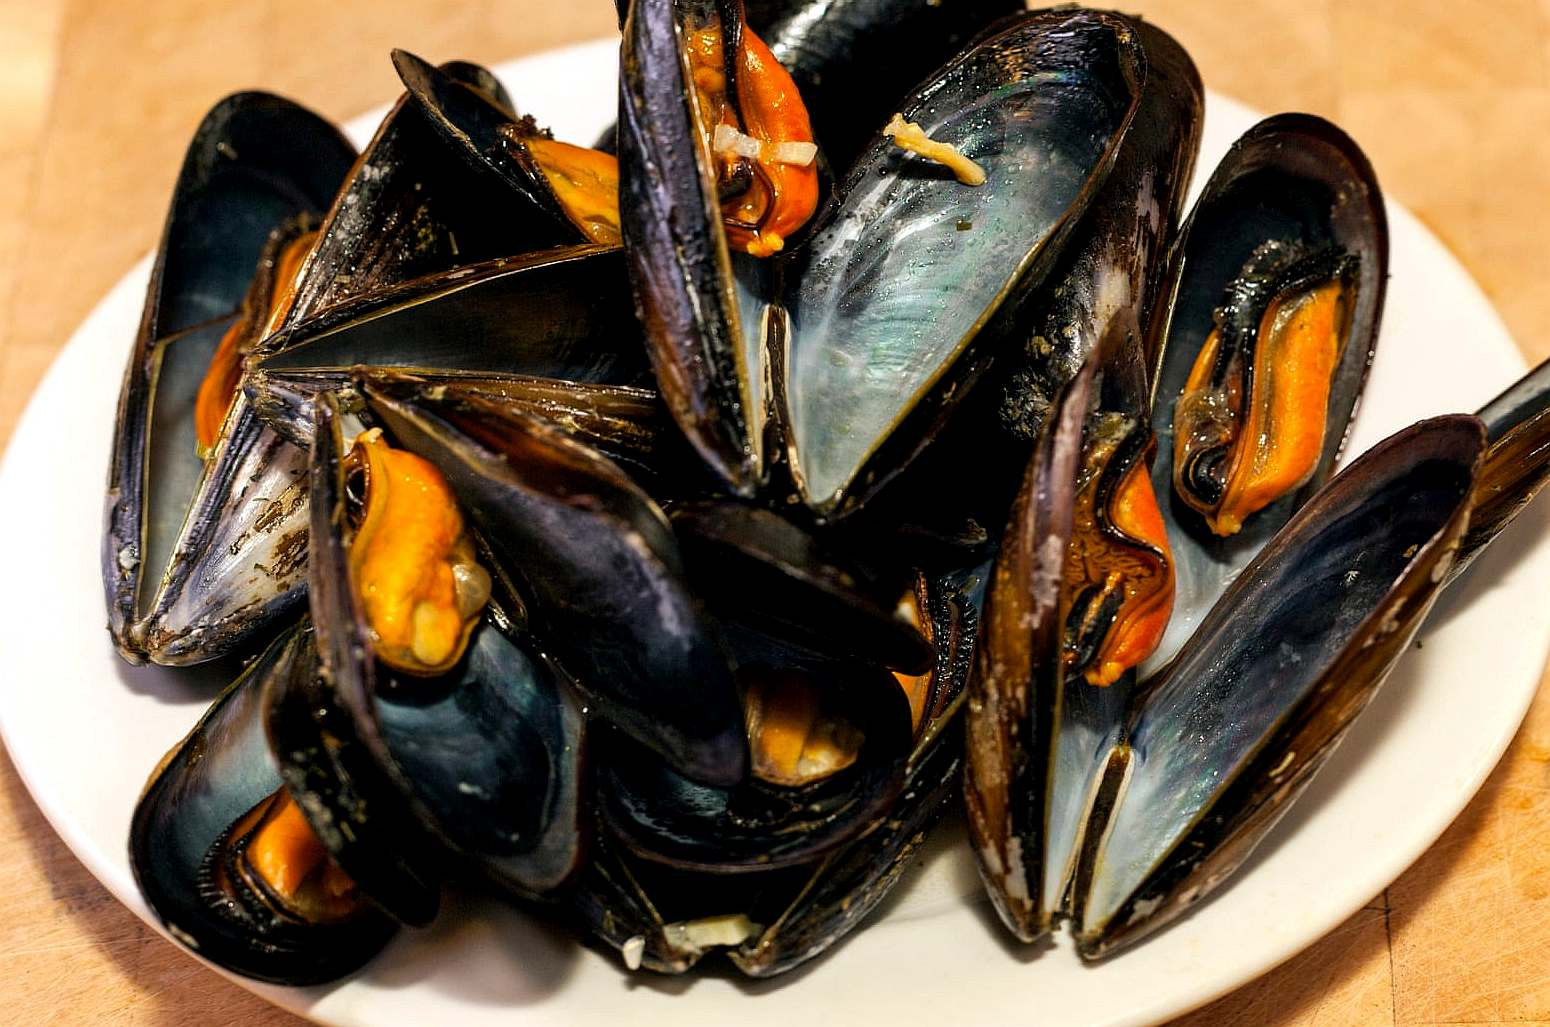 Shellfish, mussels laden with plastic microfibers